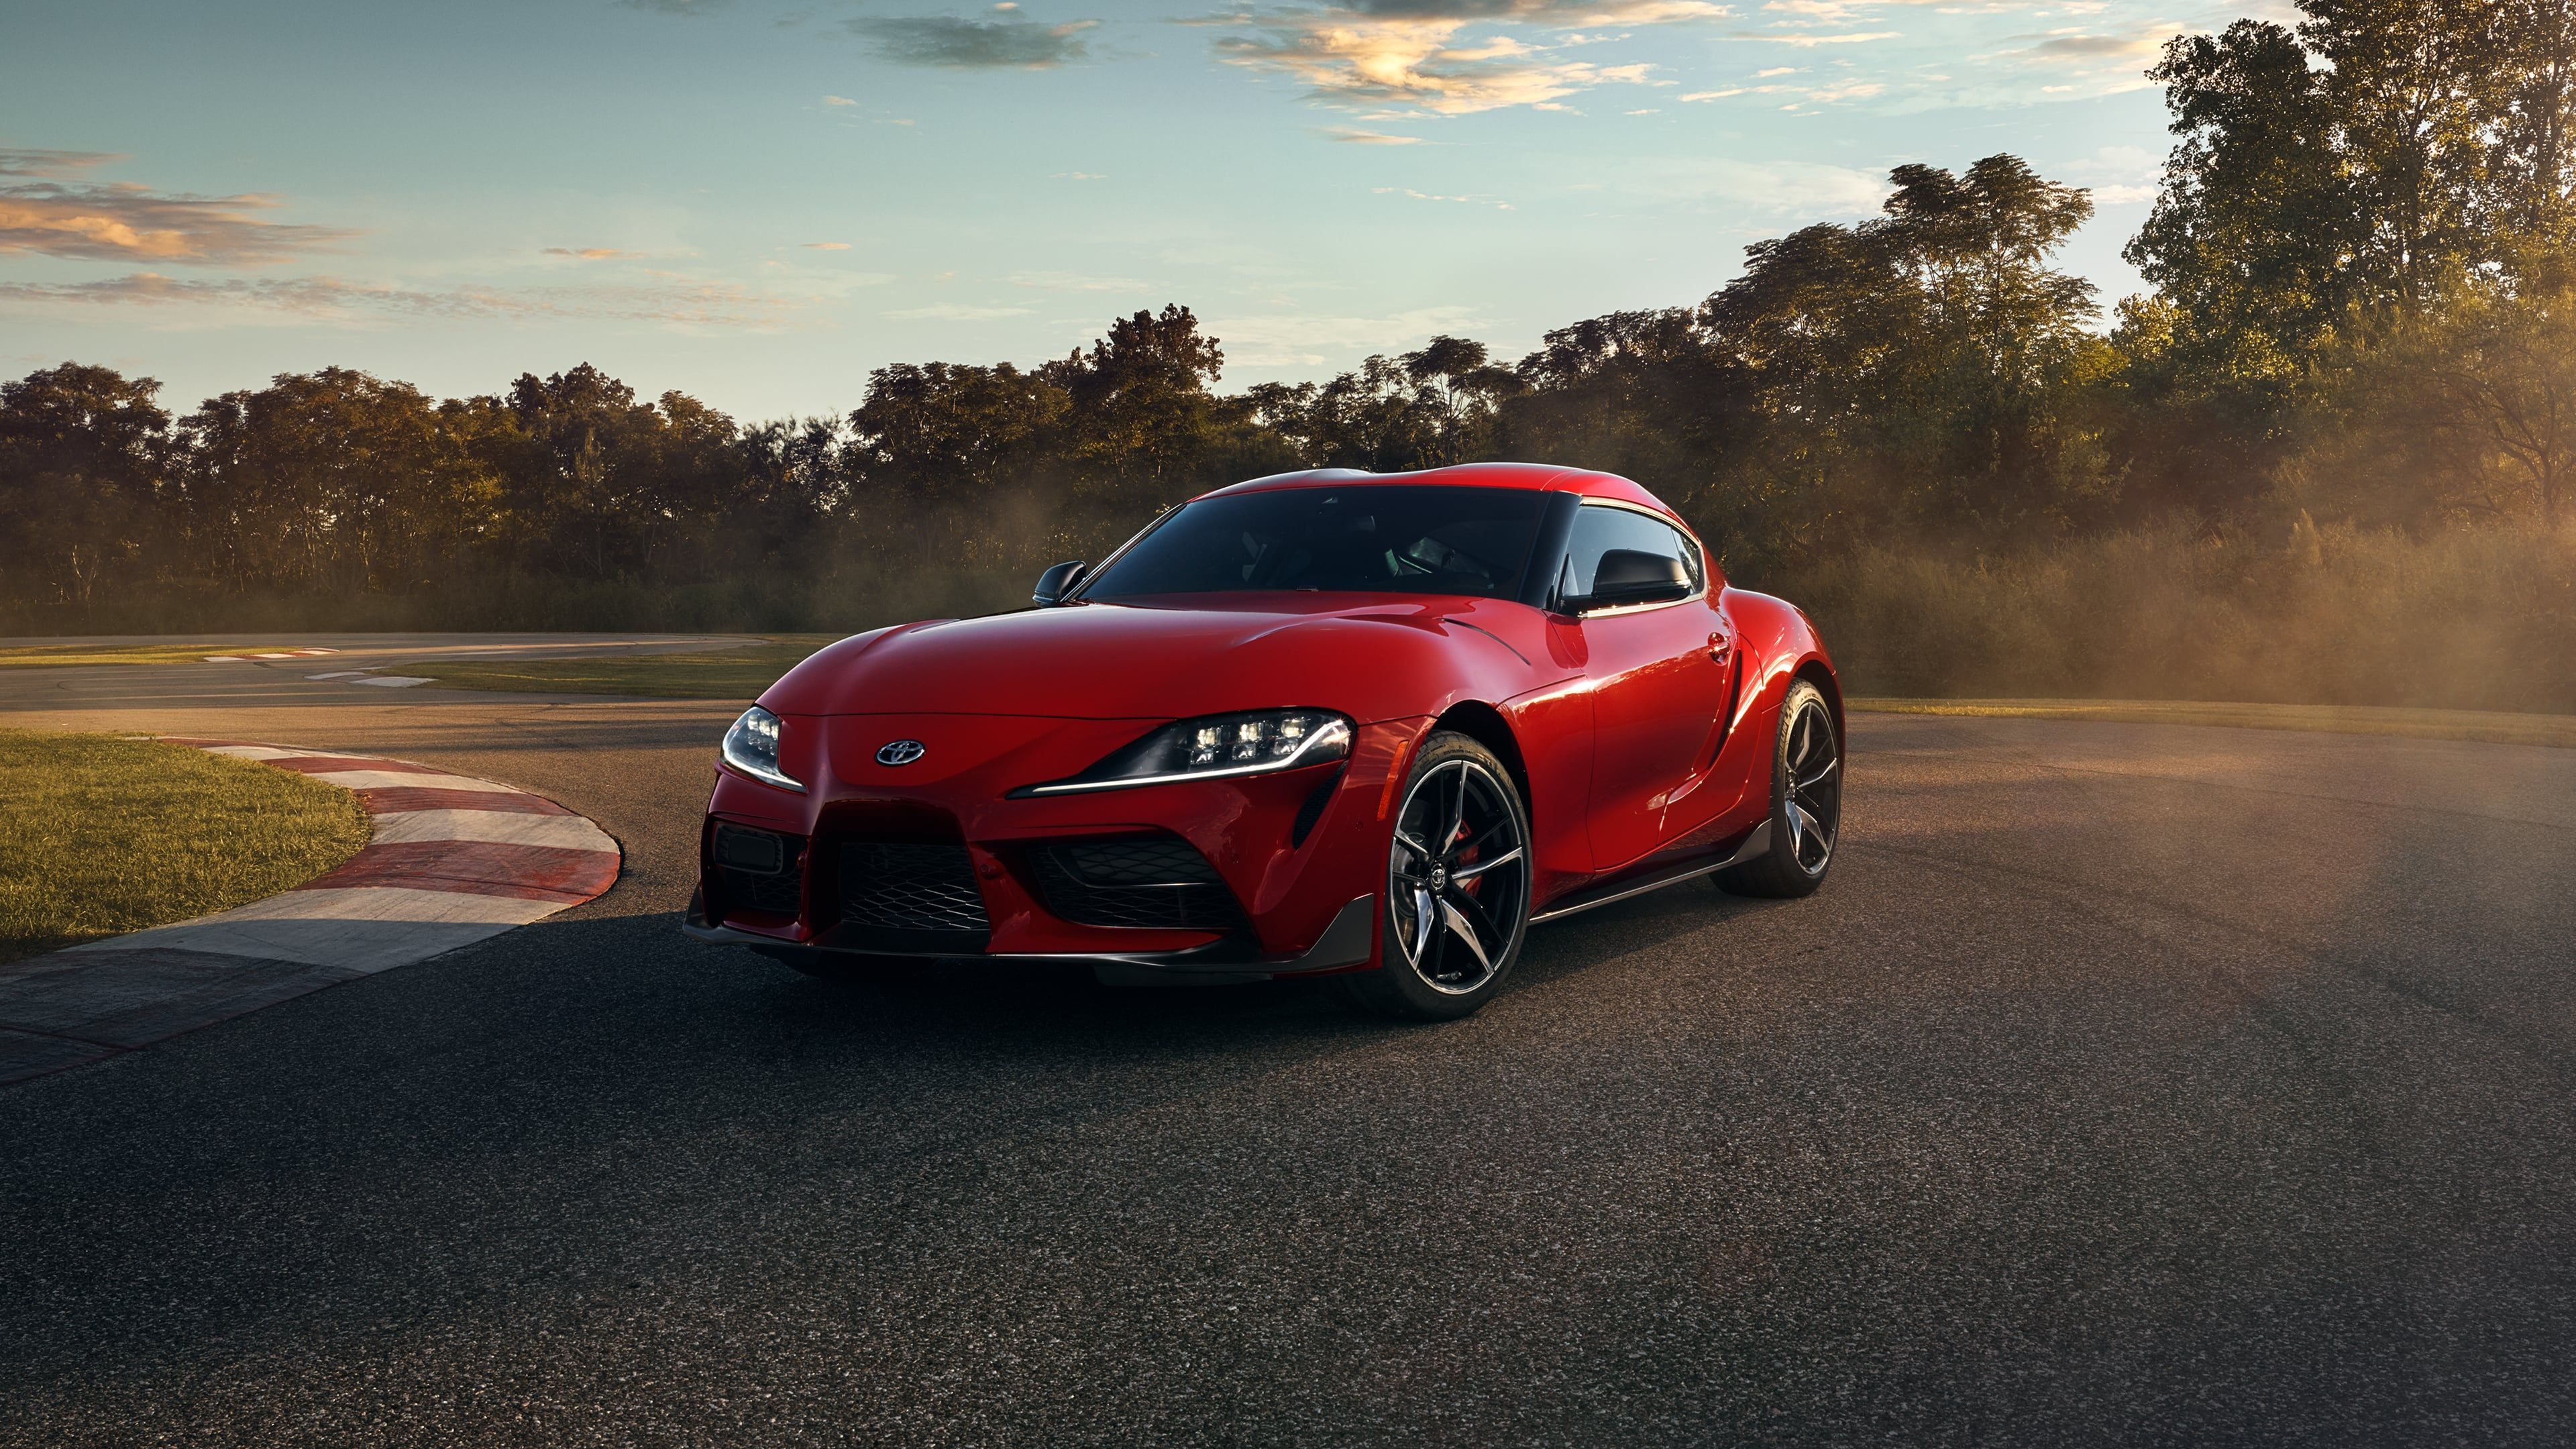 102b69dc40 New Supra | 2020 Toyota Supra Price and Features